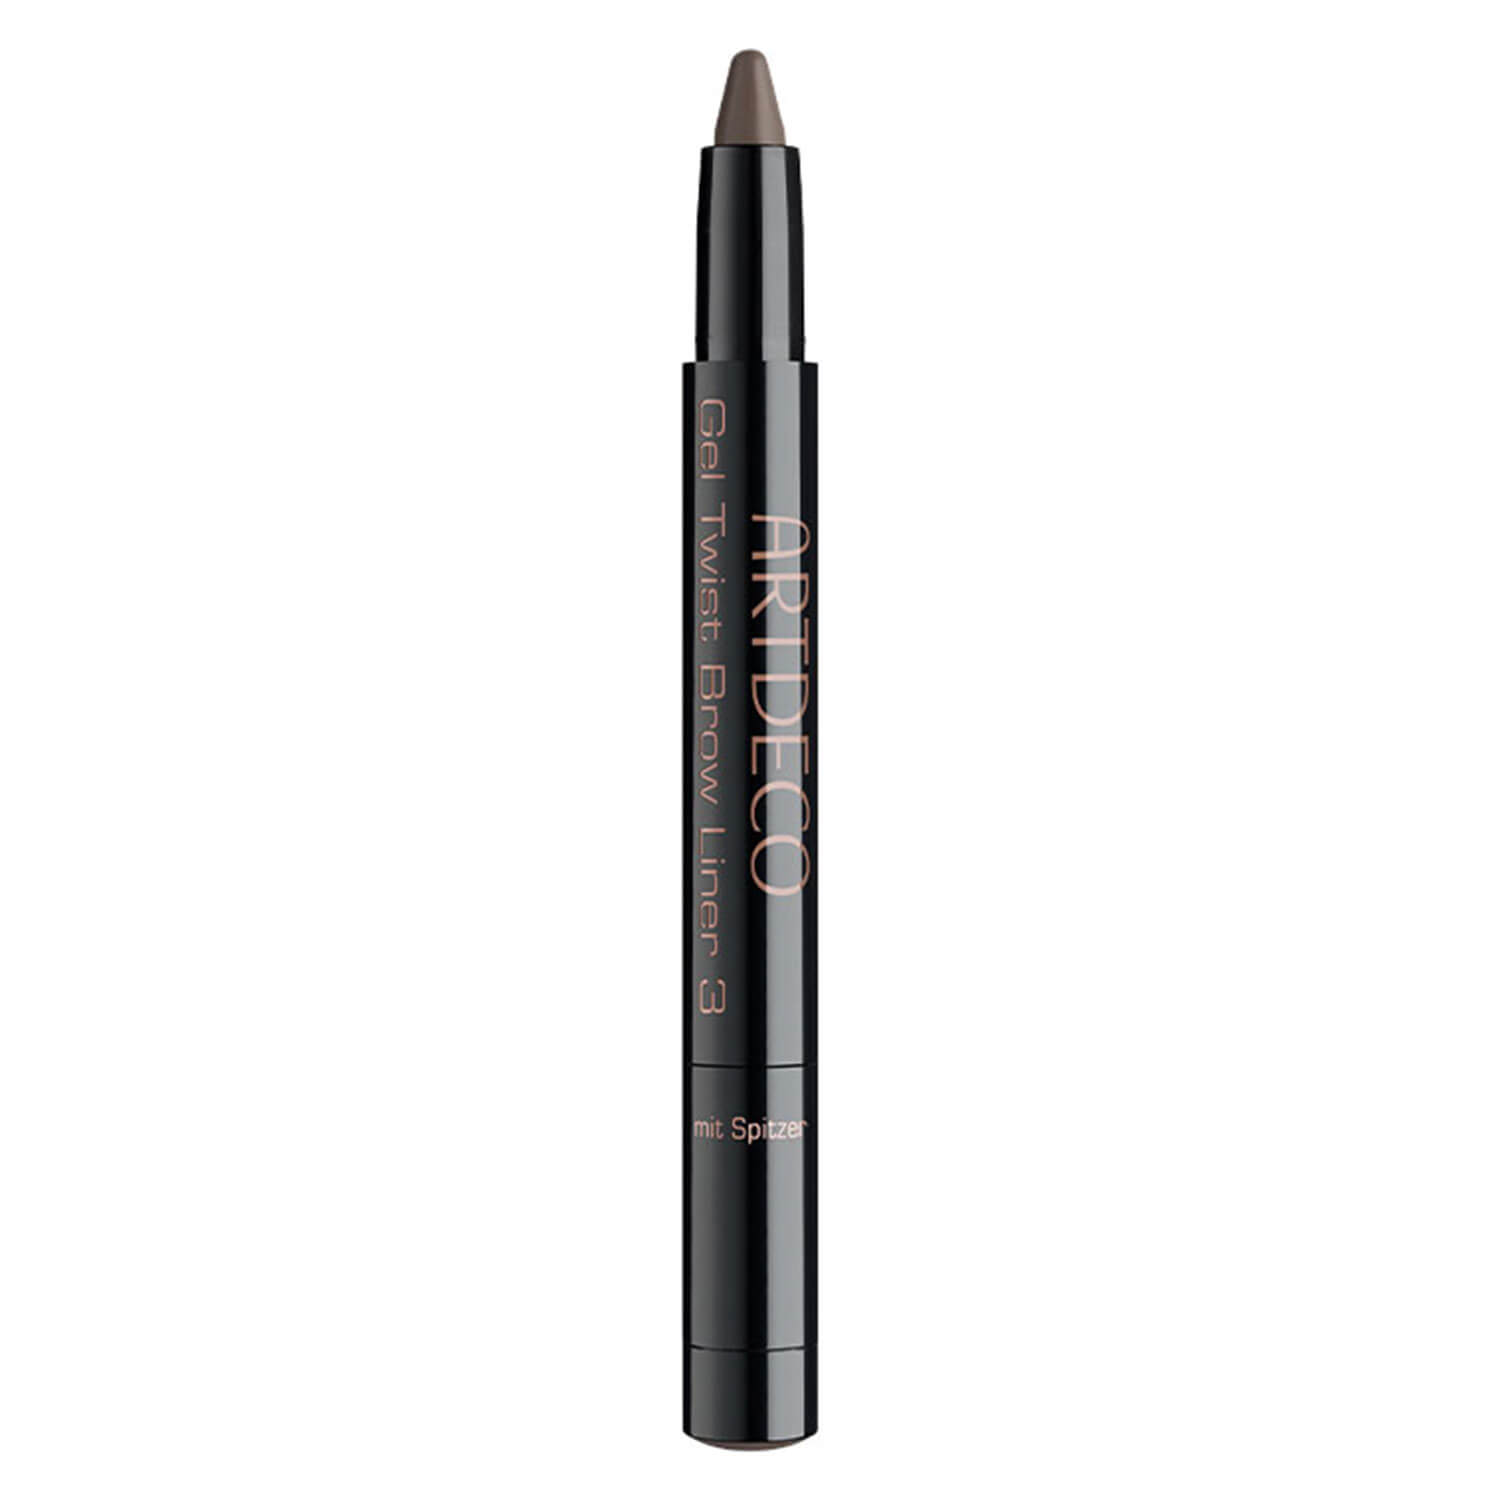 Artdeco Brows - Gel Twist Brow Liner Soft Brown 3